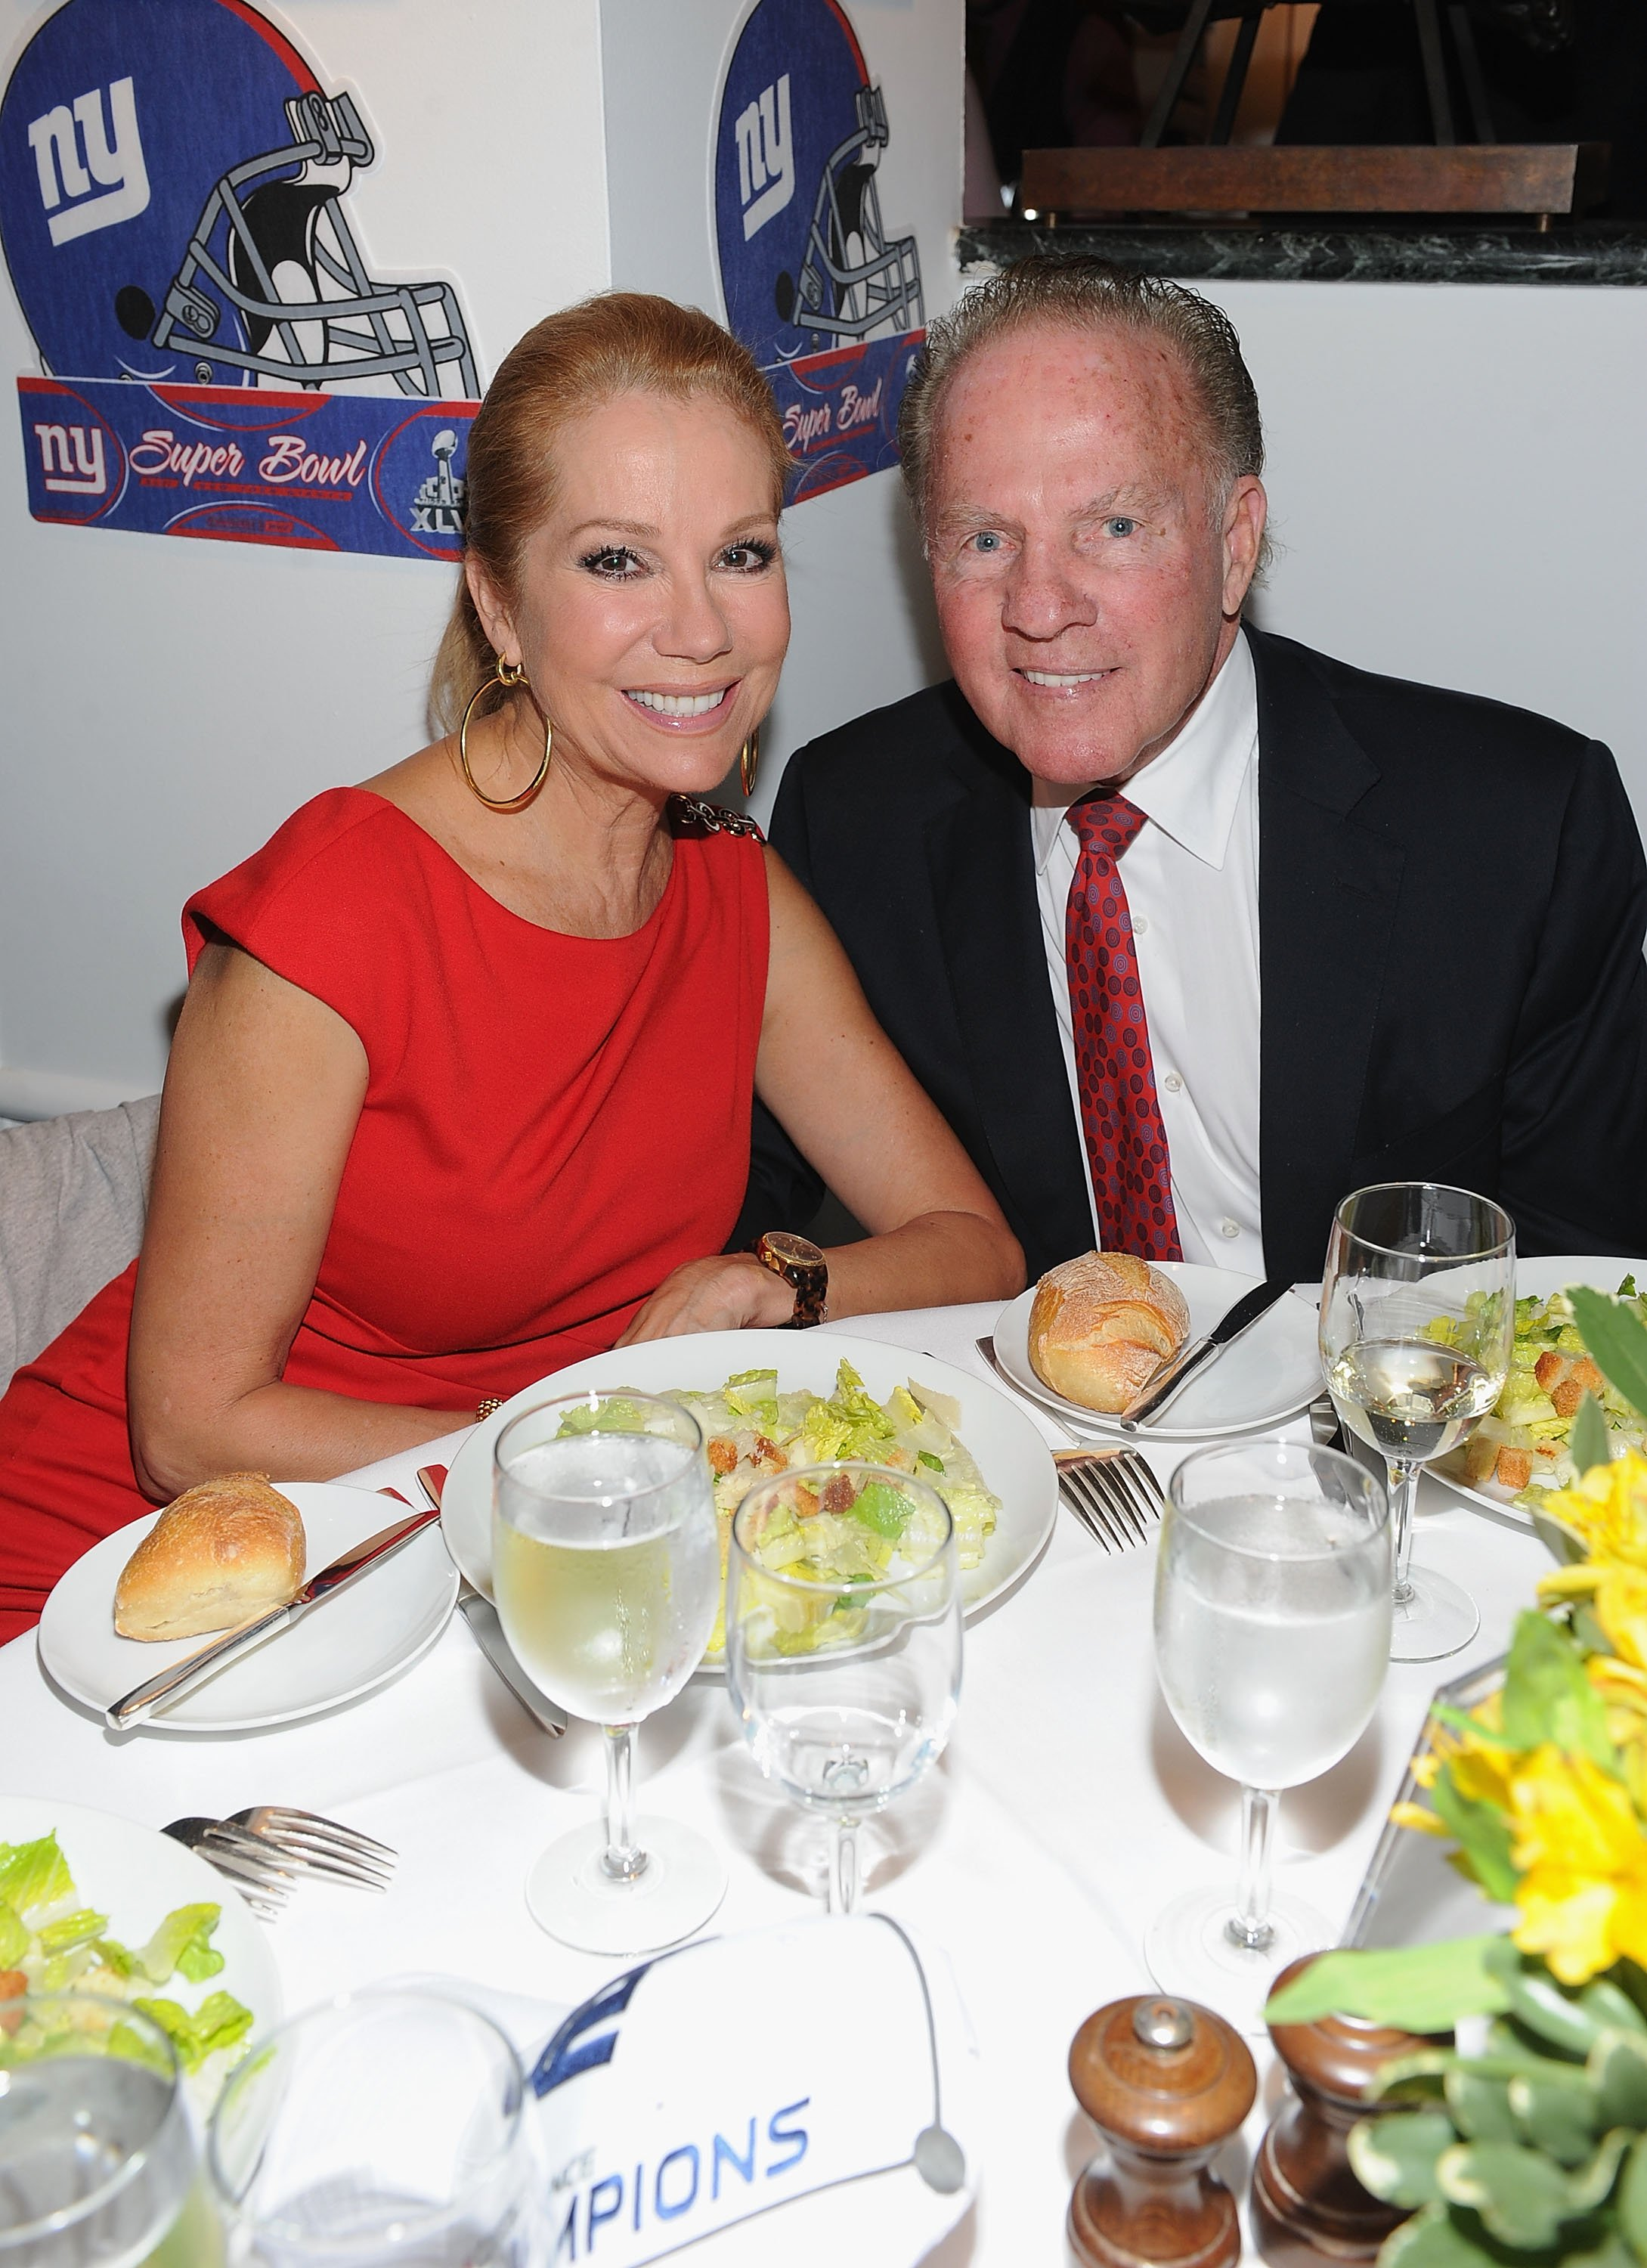 Image Credits: Getty Images / Dimitrios Kambouris | Kathy Lee Gifford and Frank Gifford attend the New York Giants Super Bowl Pep Rally Luncheon at Michael's on February 1, 2012 in New York City.